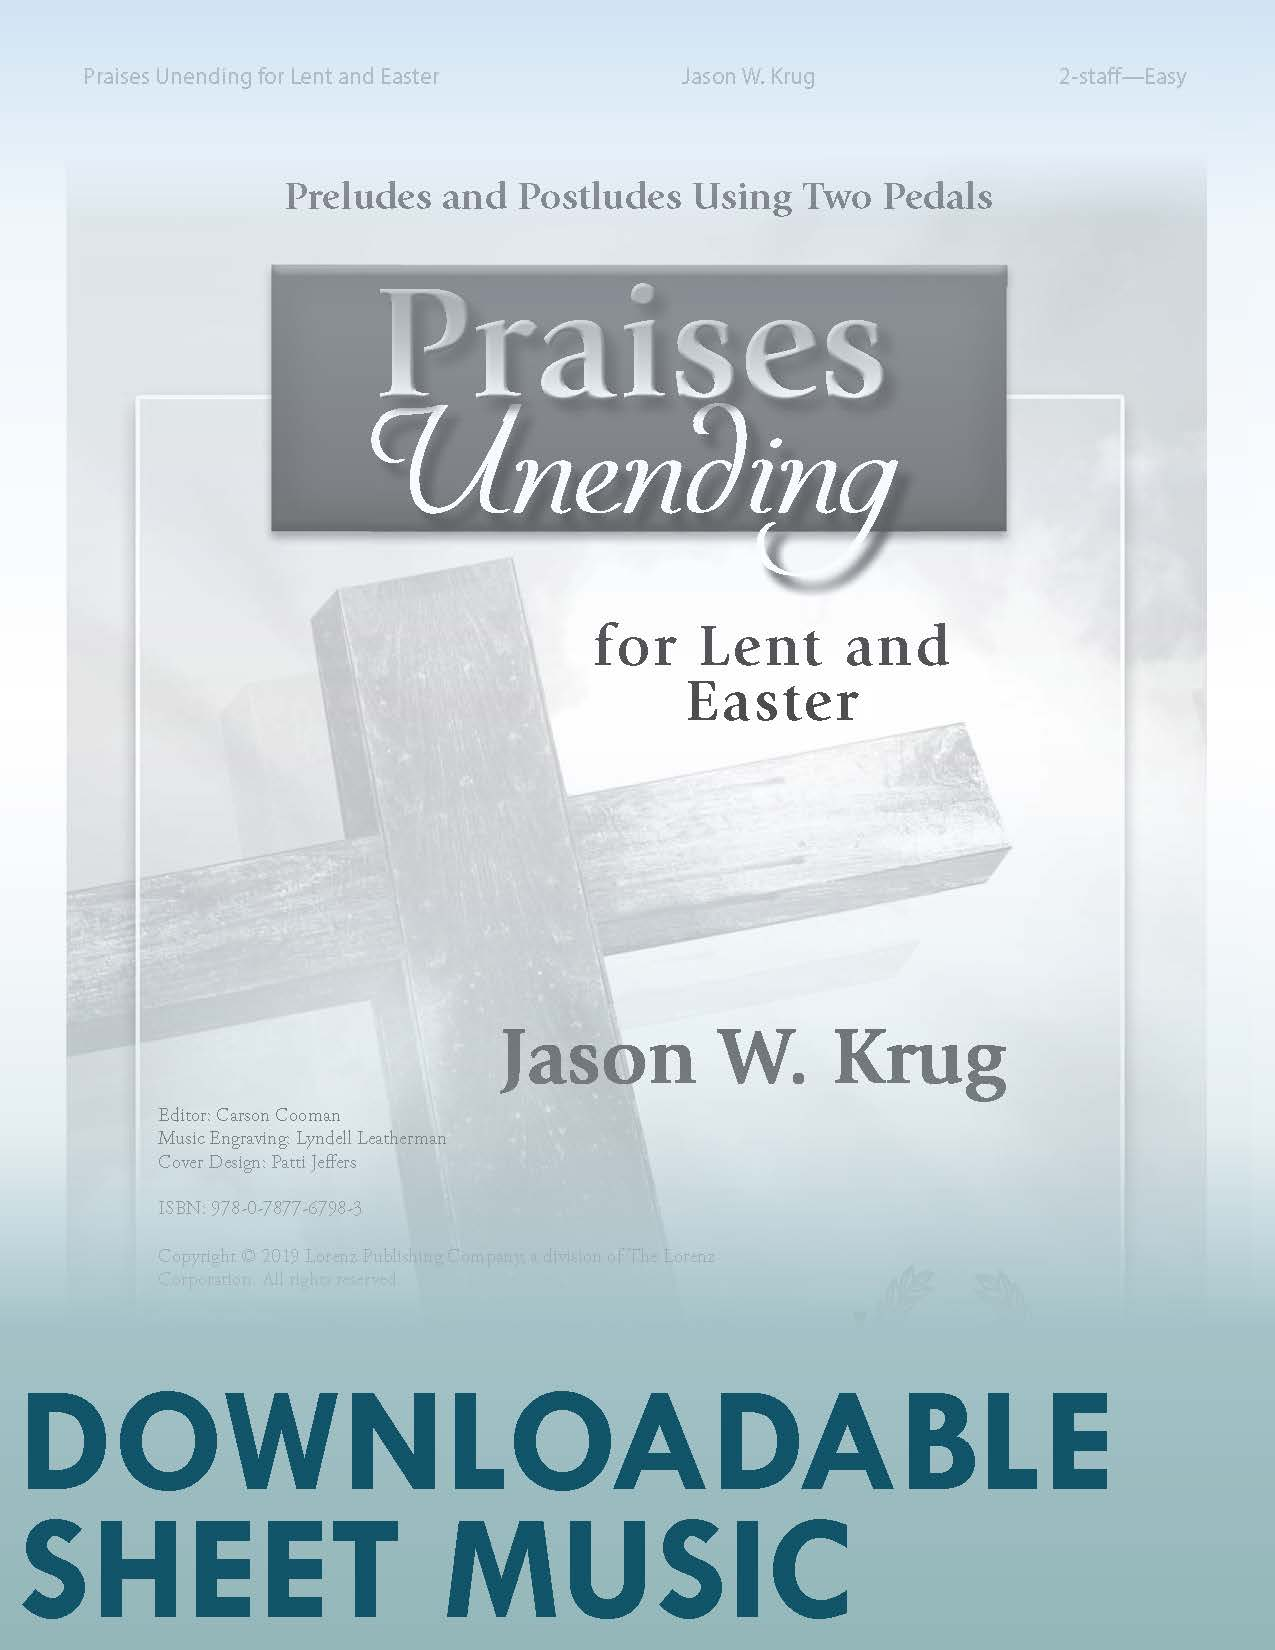 Praises Unending for Lent and Easter - Digital Download